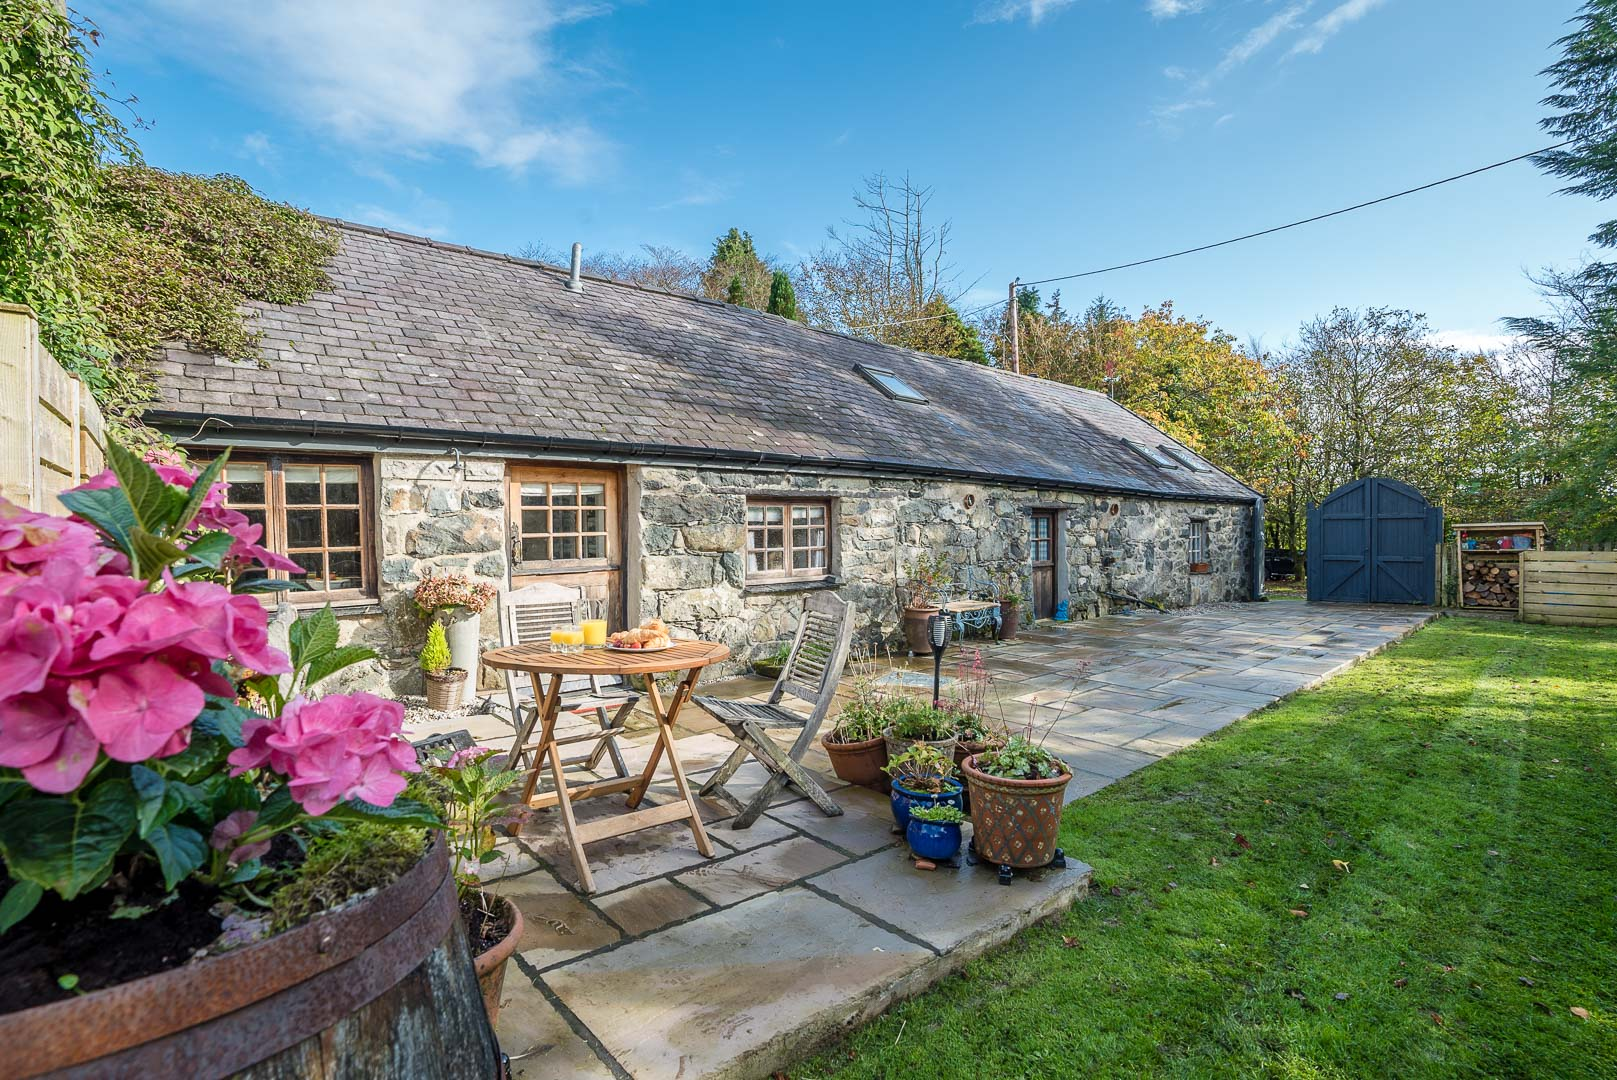 Traditional Barn Conversion With Lots of Character Features | Stabal-Derwin